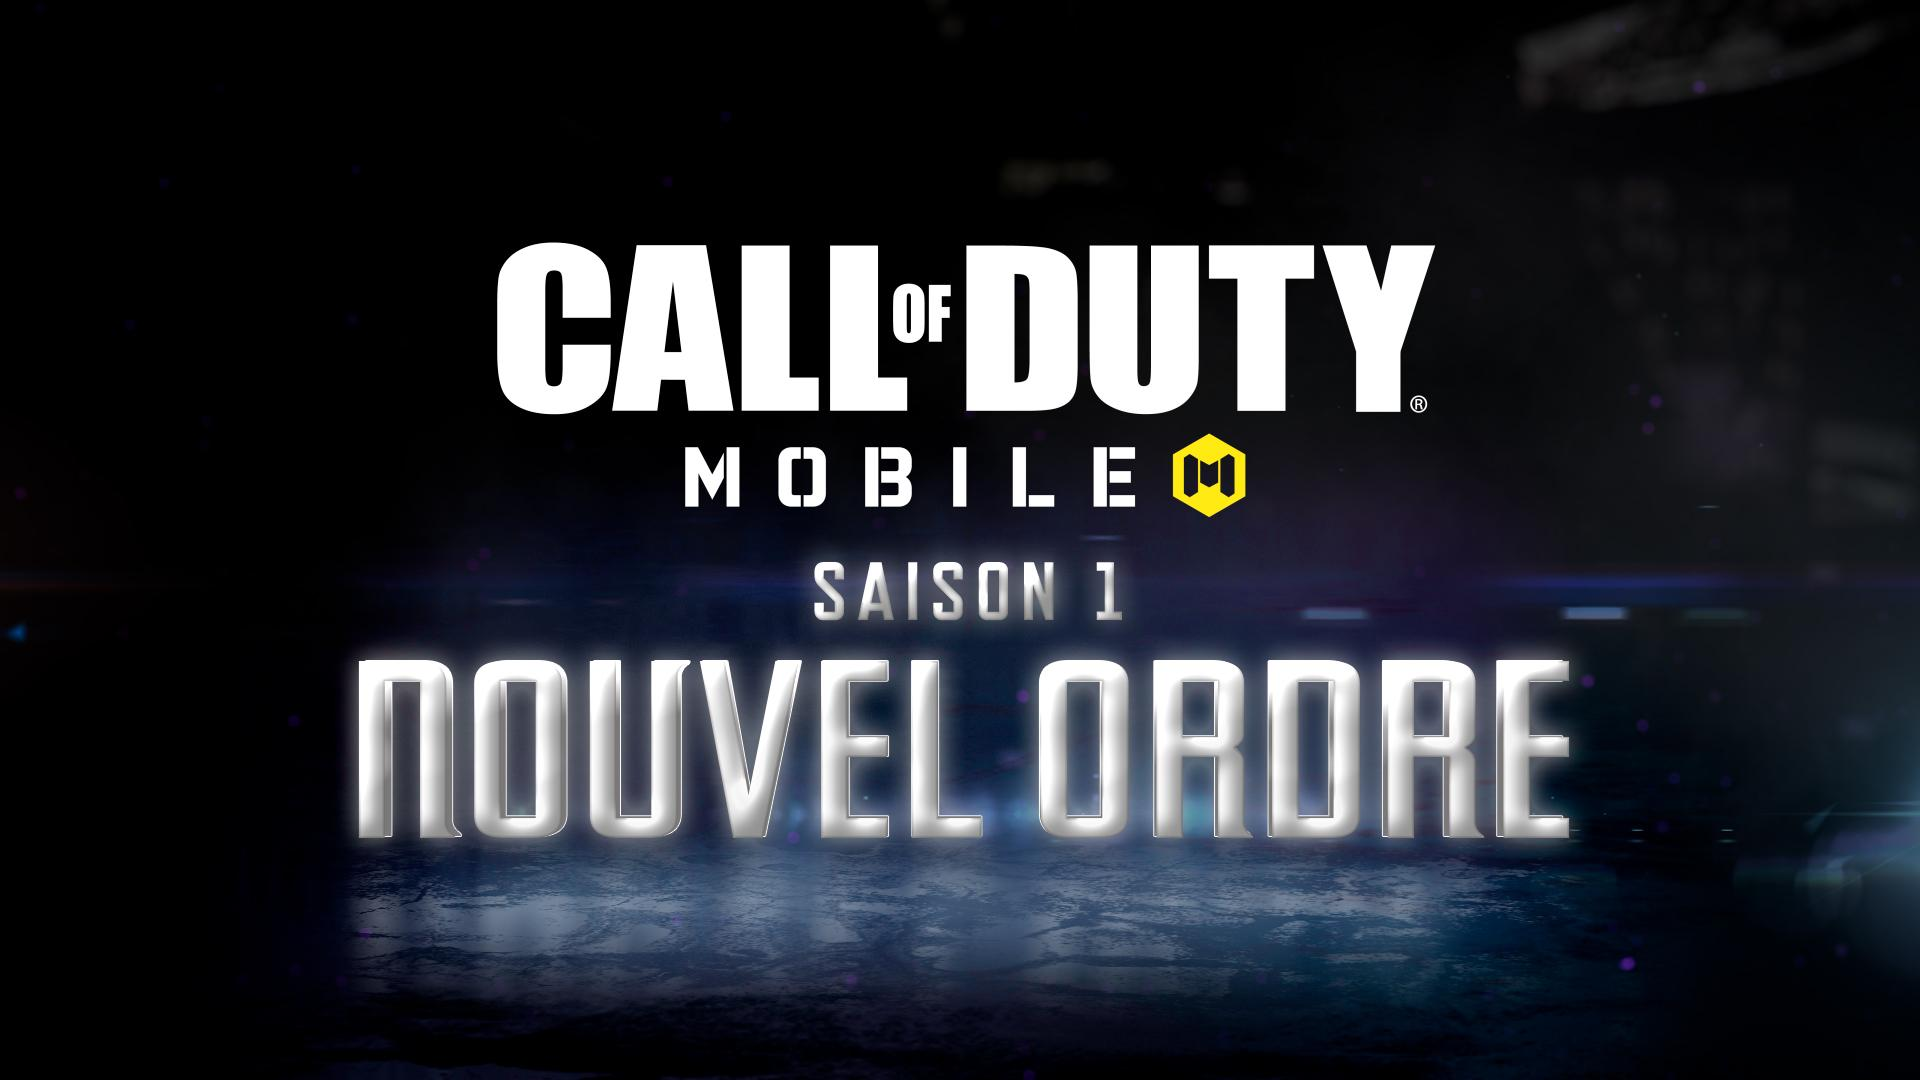 La saison 1 de Call of Duty Mobile se profile à l'horizon